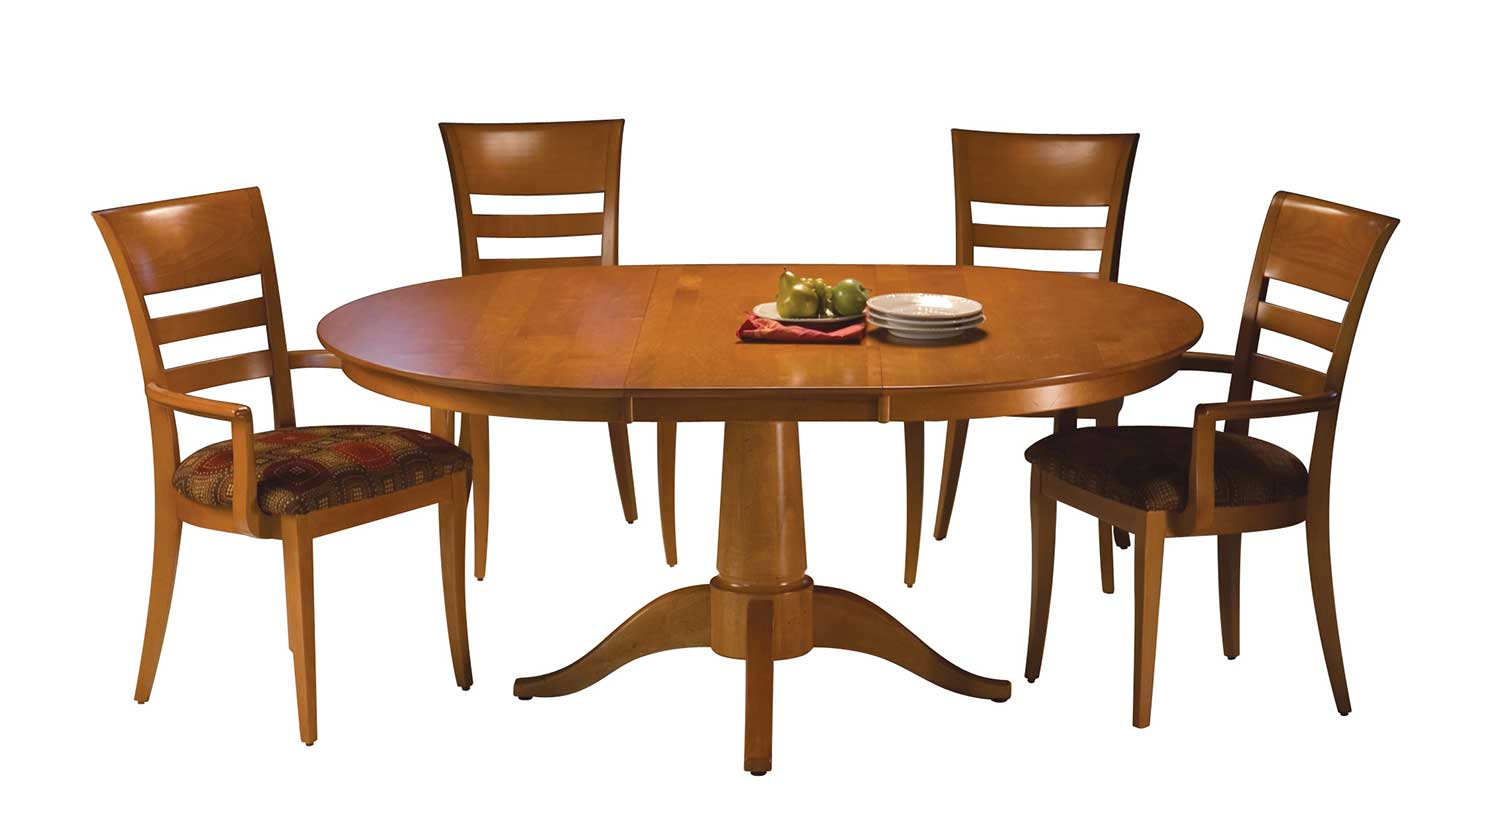 Circle furniture chelsea dining table pedestal tables for Circle furniture dining tables